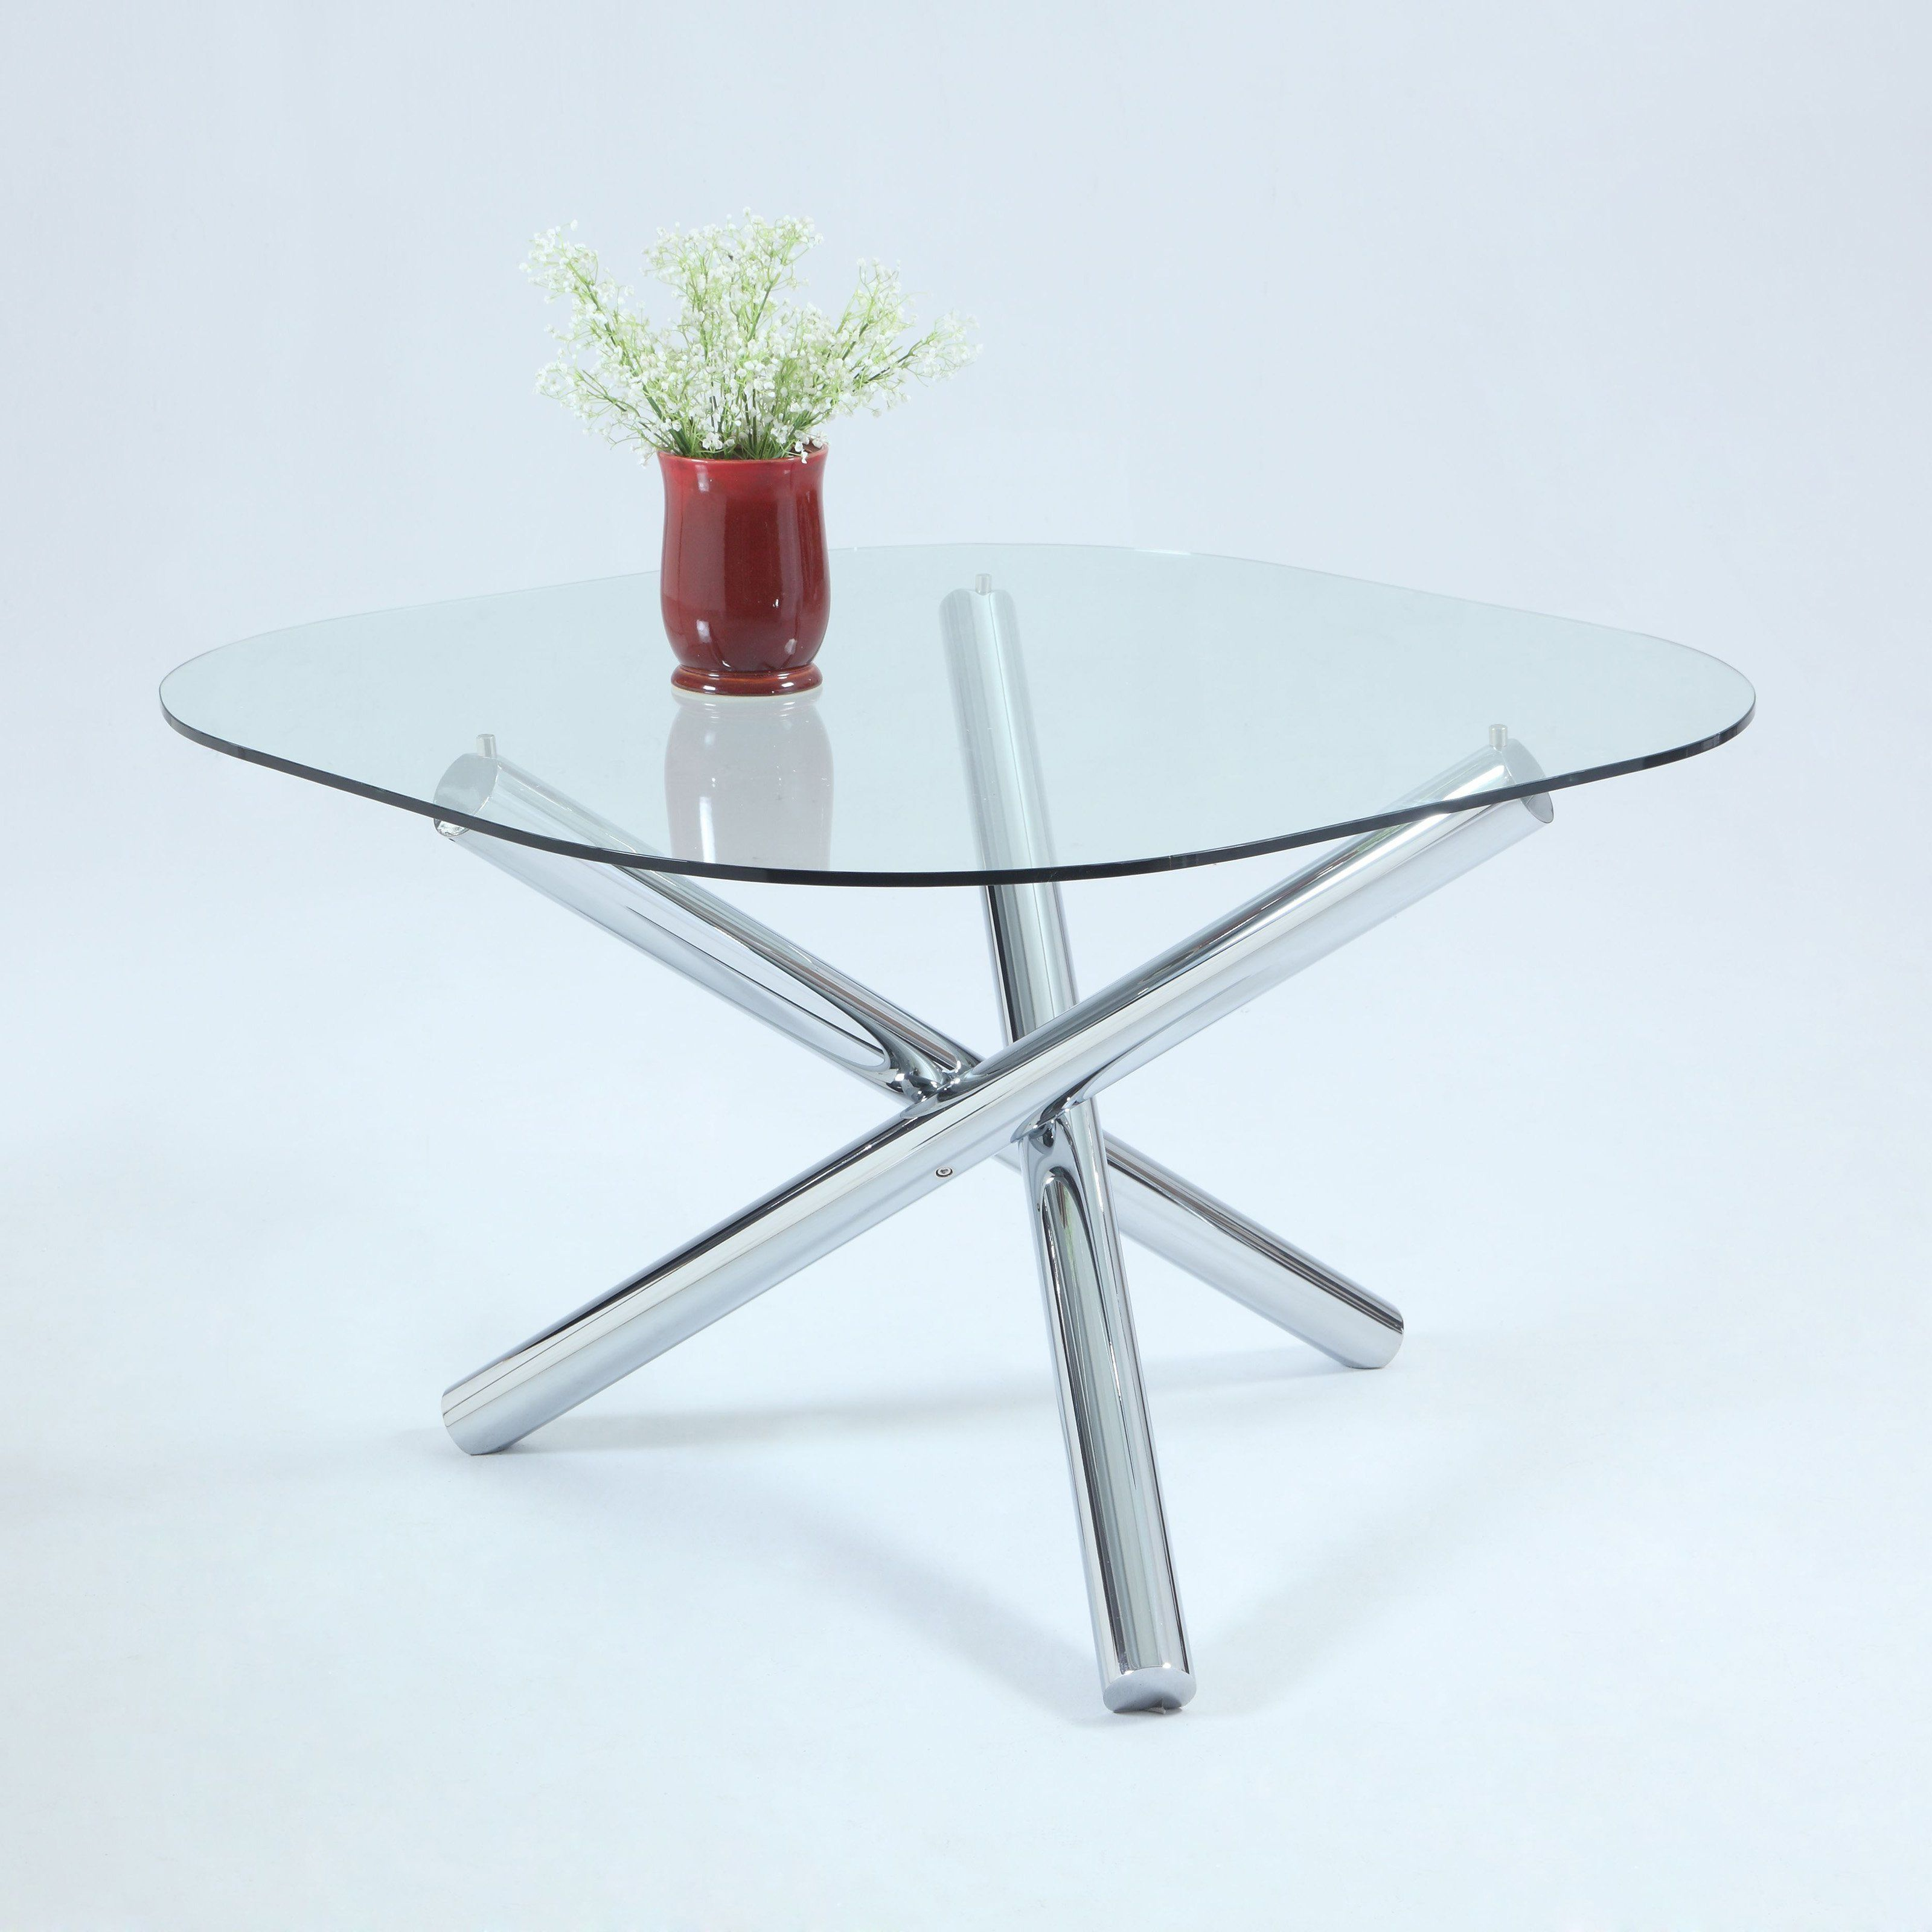 Chintaly Leatrice Round Glass Dining Table - CTY2012 | Products ...